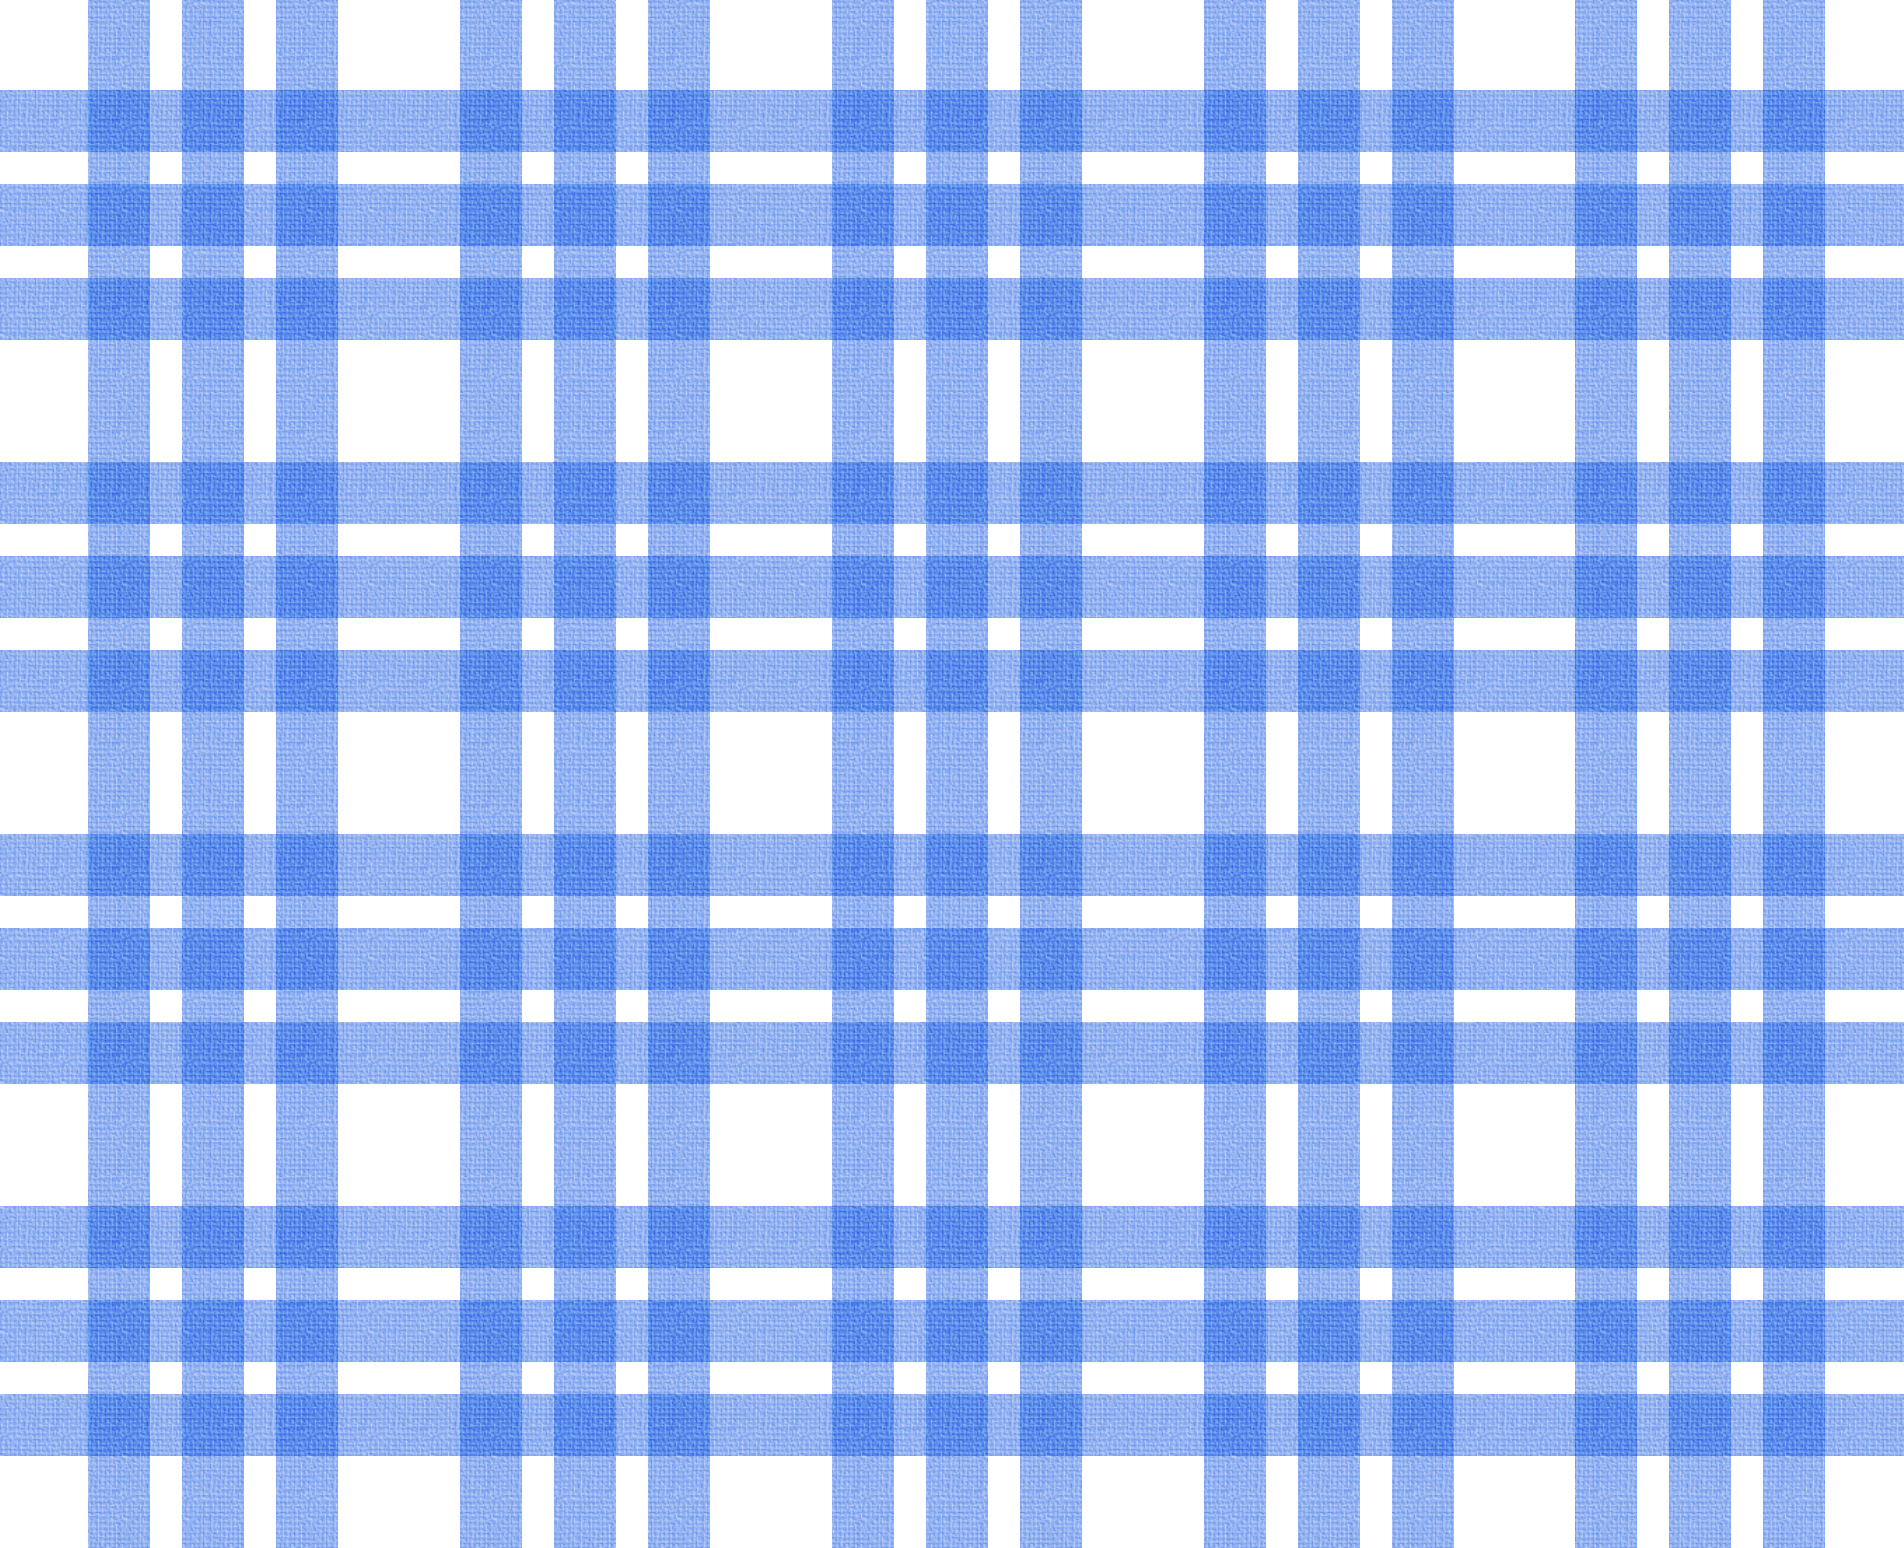 Blue and white tablecloth pattern photo